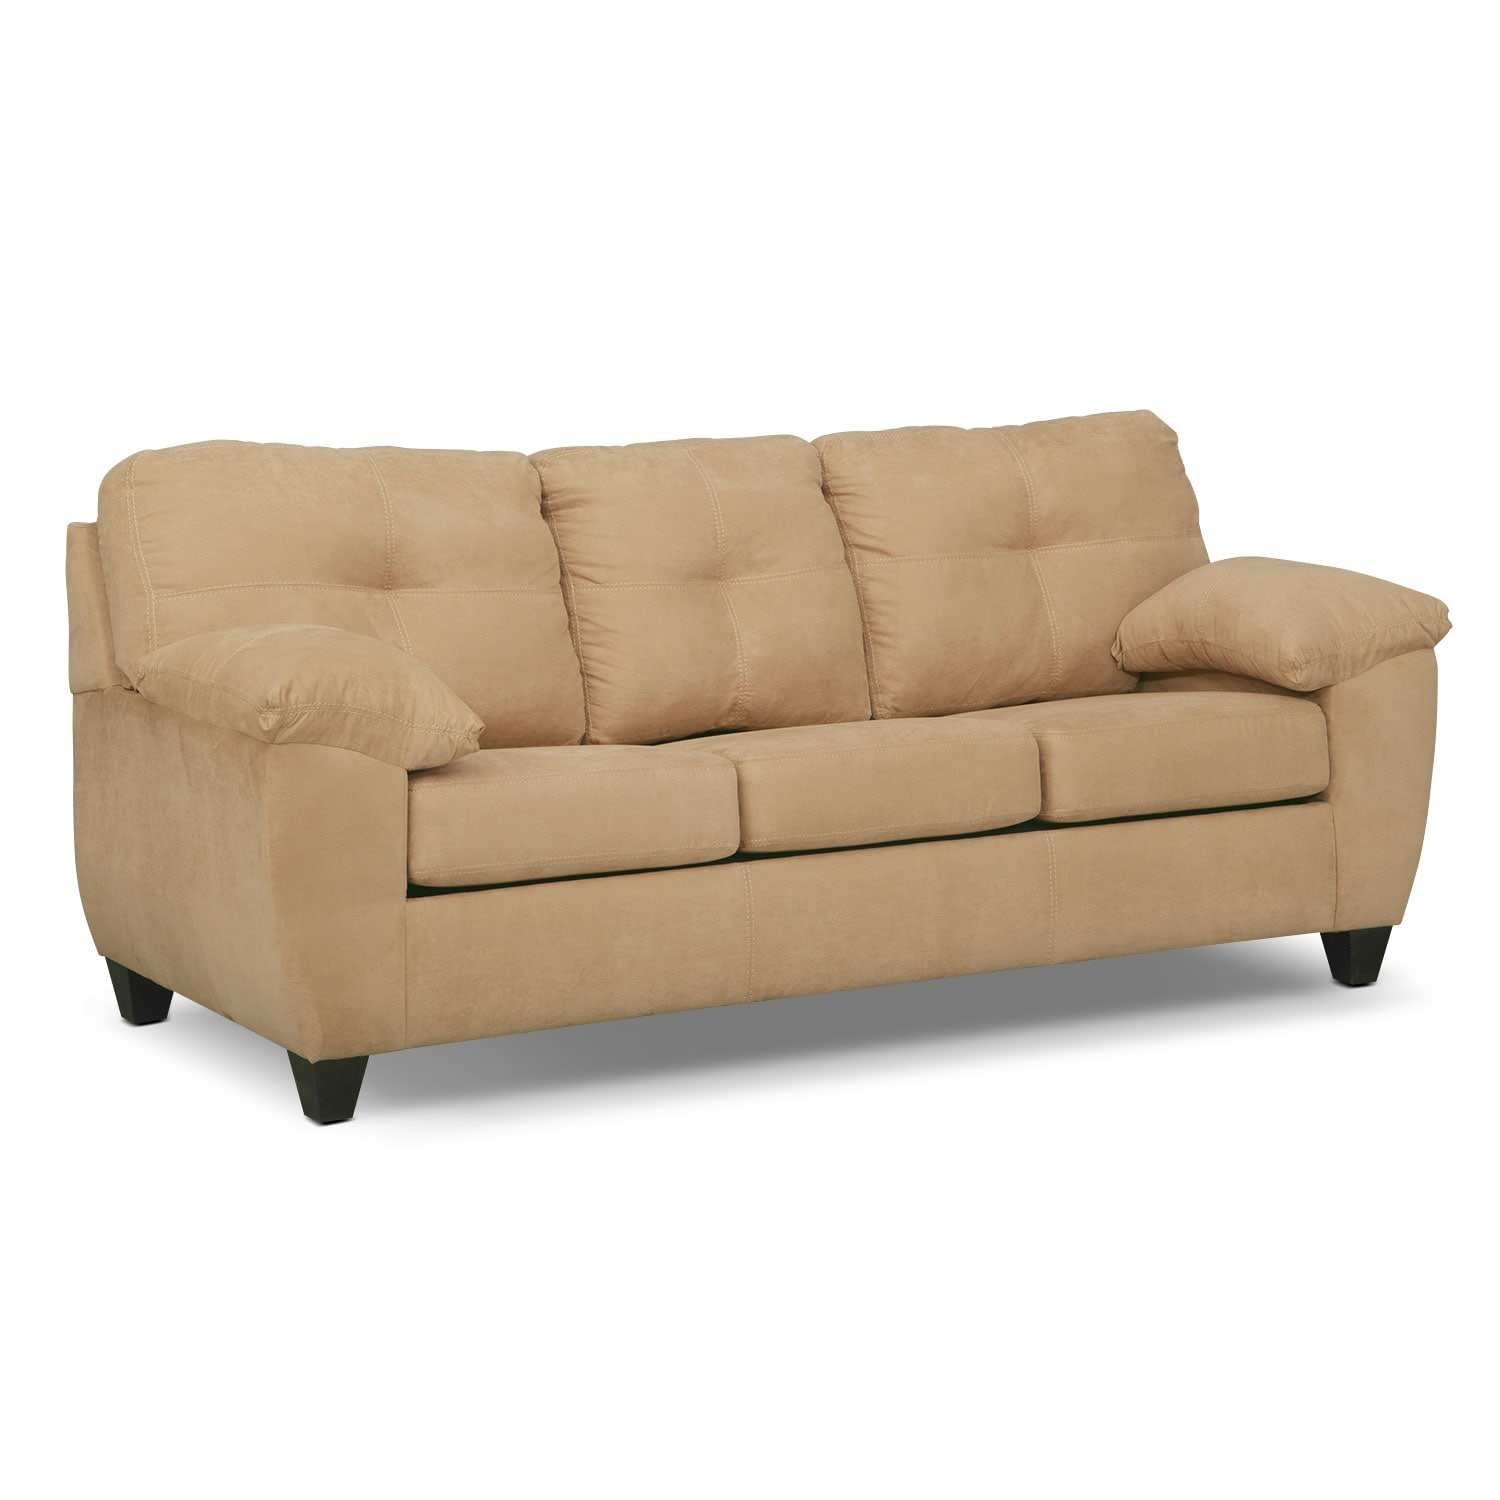 Living Room Furniture - Rialto Sofa - Camel